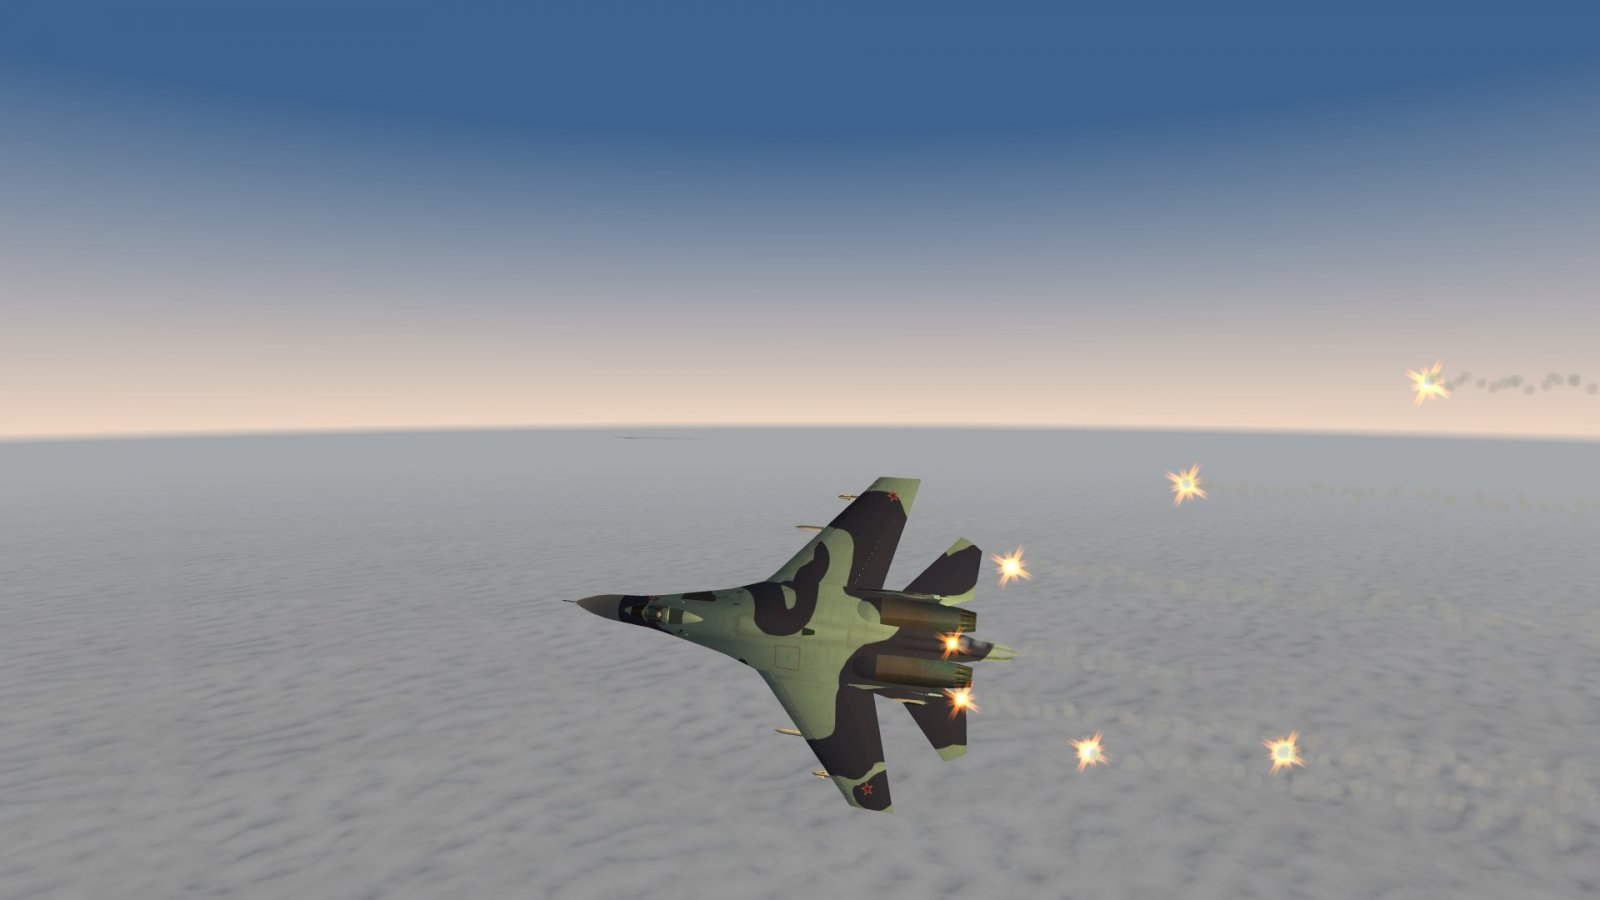 Su-27 Flanker Desperately Putting Out Flares